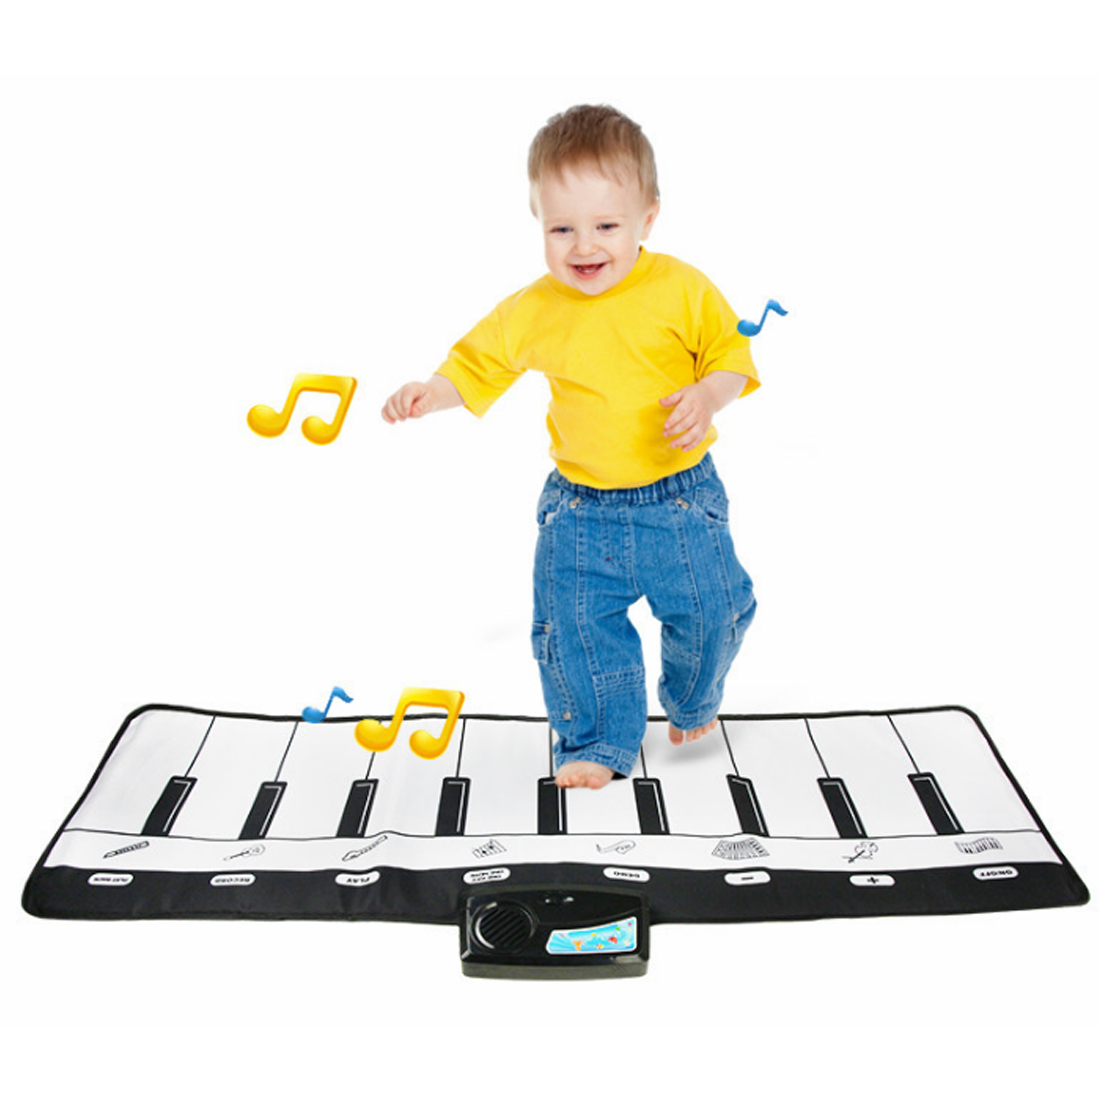 Hot Kids Piano Floor Mat Musical Instrument Blanket Keyboard Musical Dance Blanket Toy Soft Baby Play Mat Activity Piano Pedal